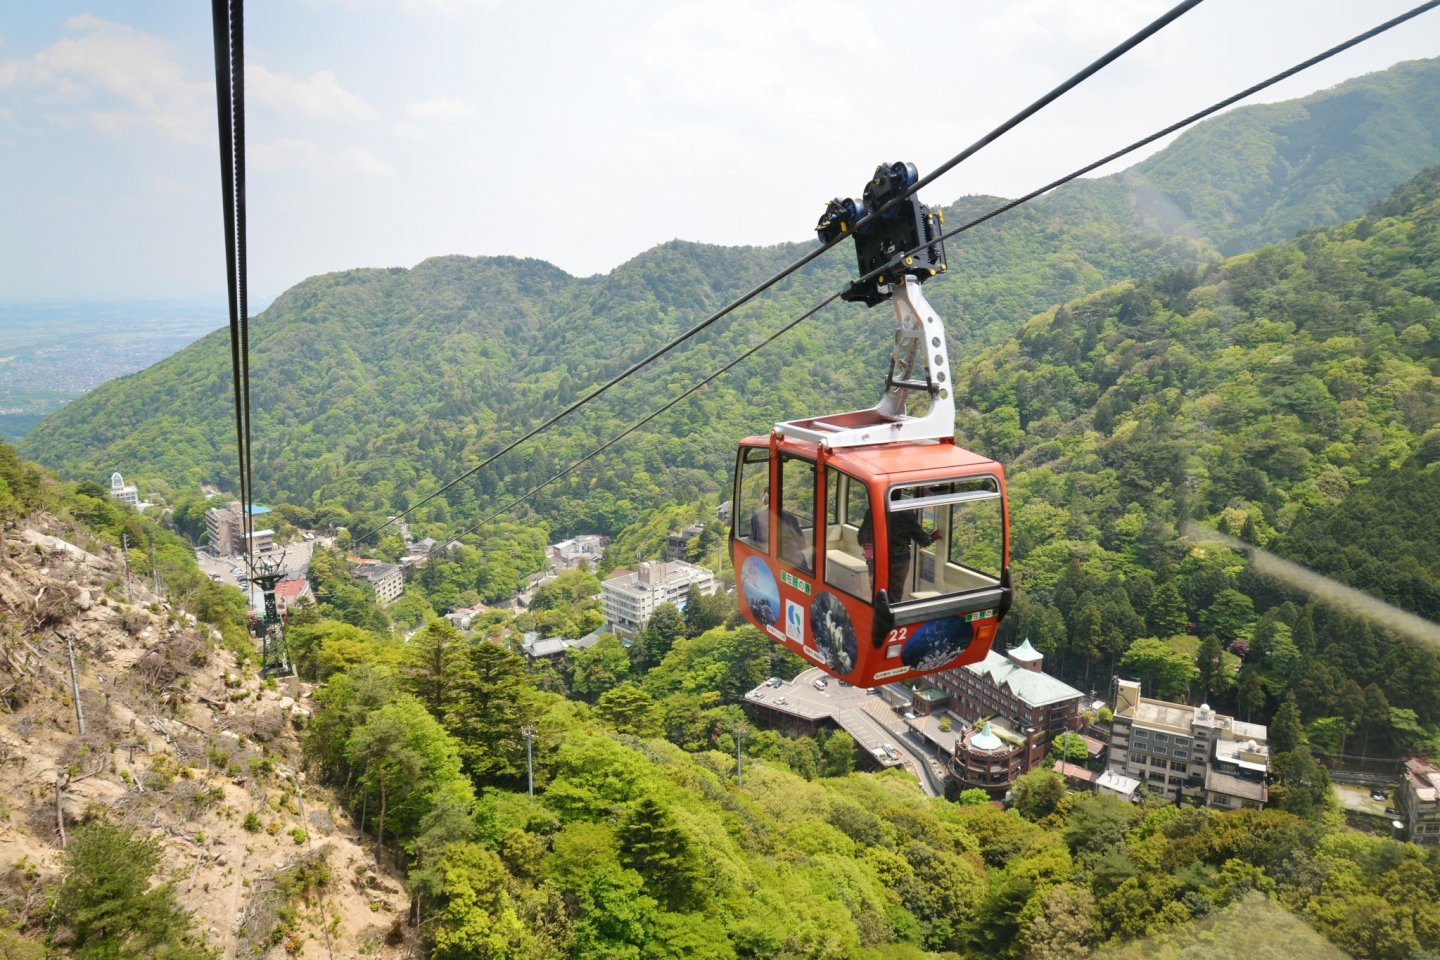 A ride on the Gozaisho Ropeway gives you amazing views of the mountainous surroundings.